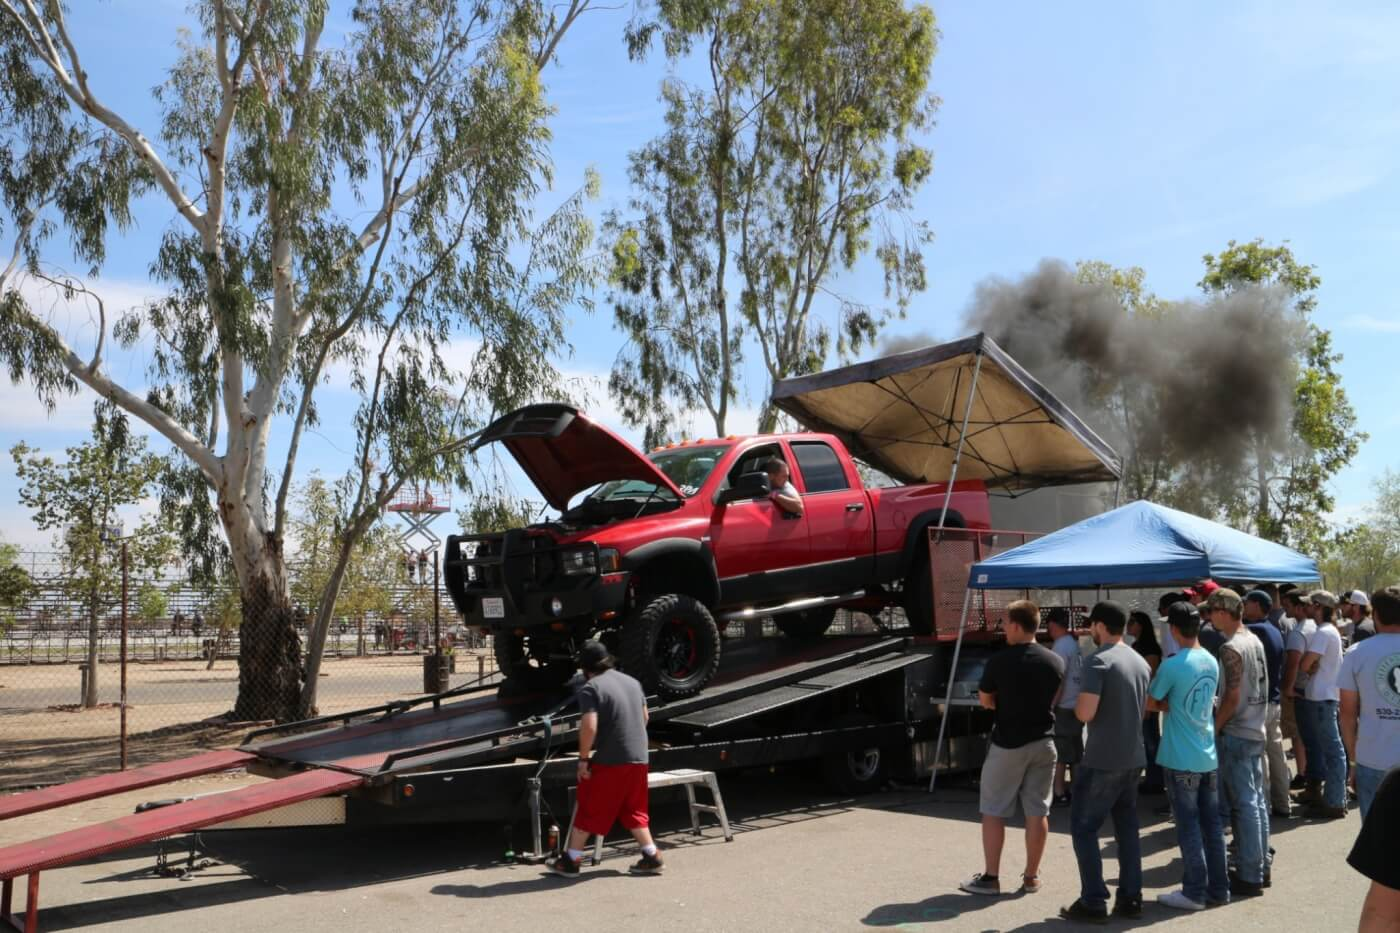 Jefferson State Diesel brought out their above-ground dyno. It was, as expected, loaded all weekend.